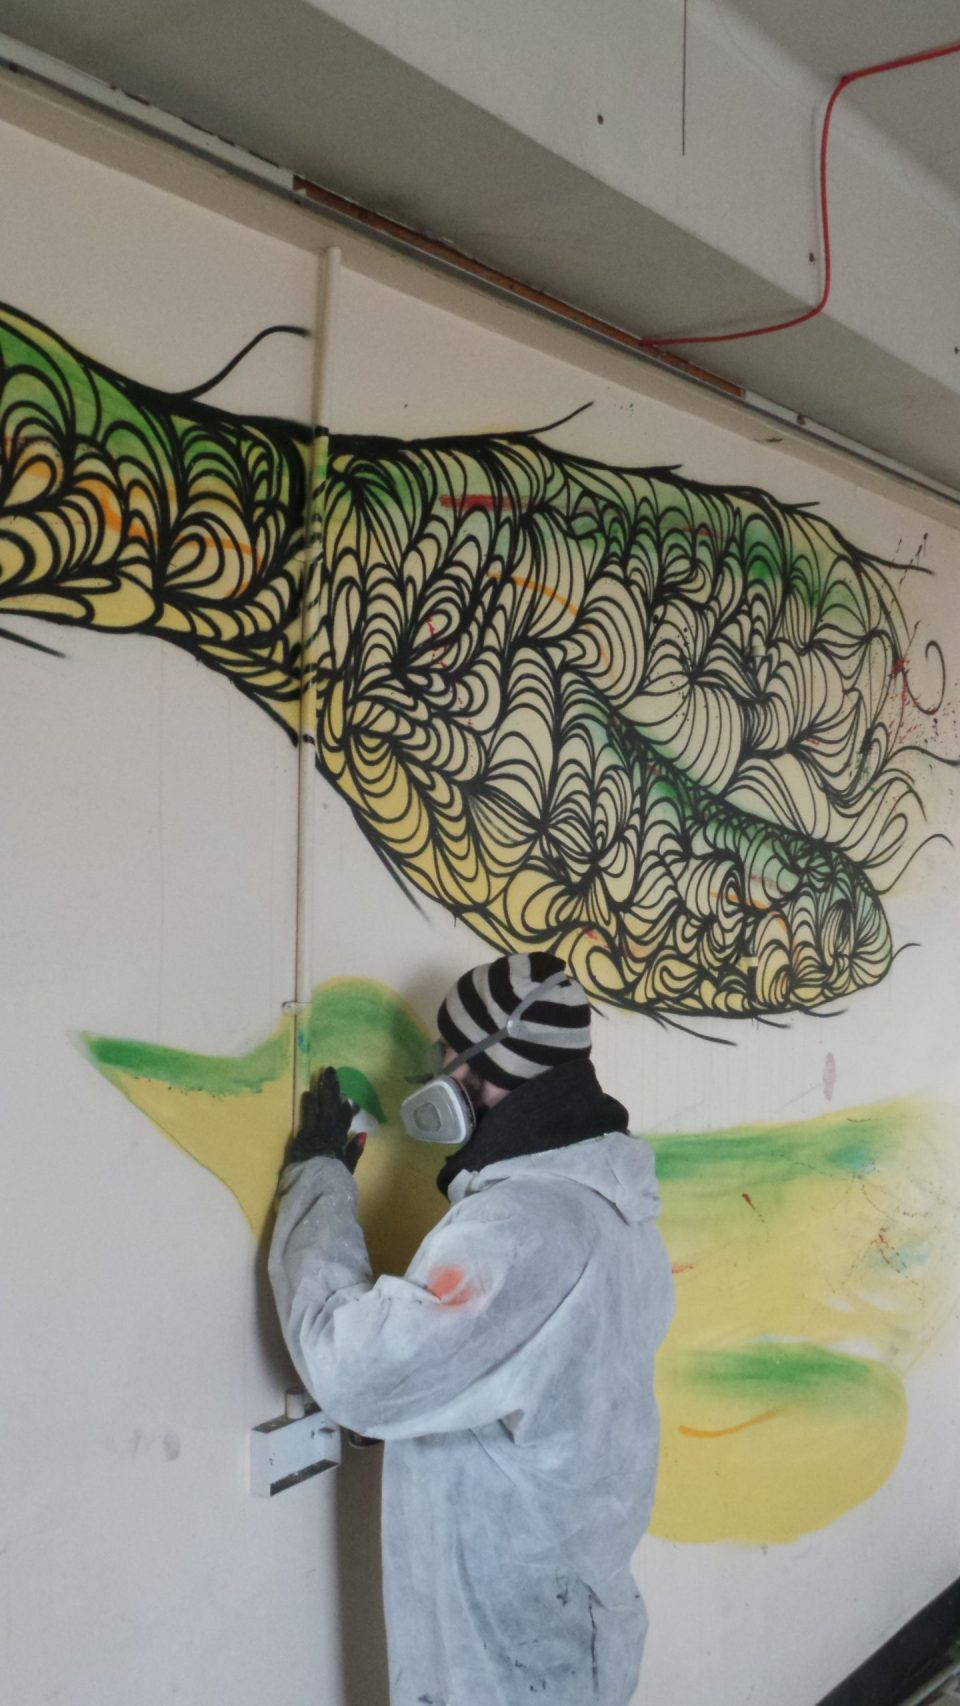 Kef will eventually add almost 1000 lines to this mural